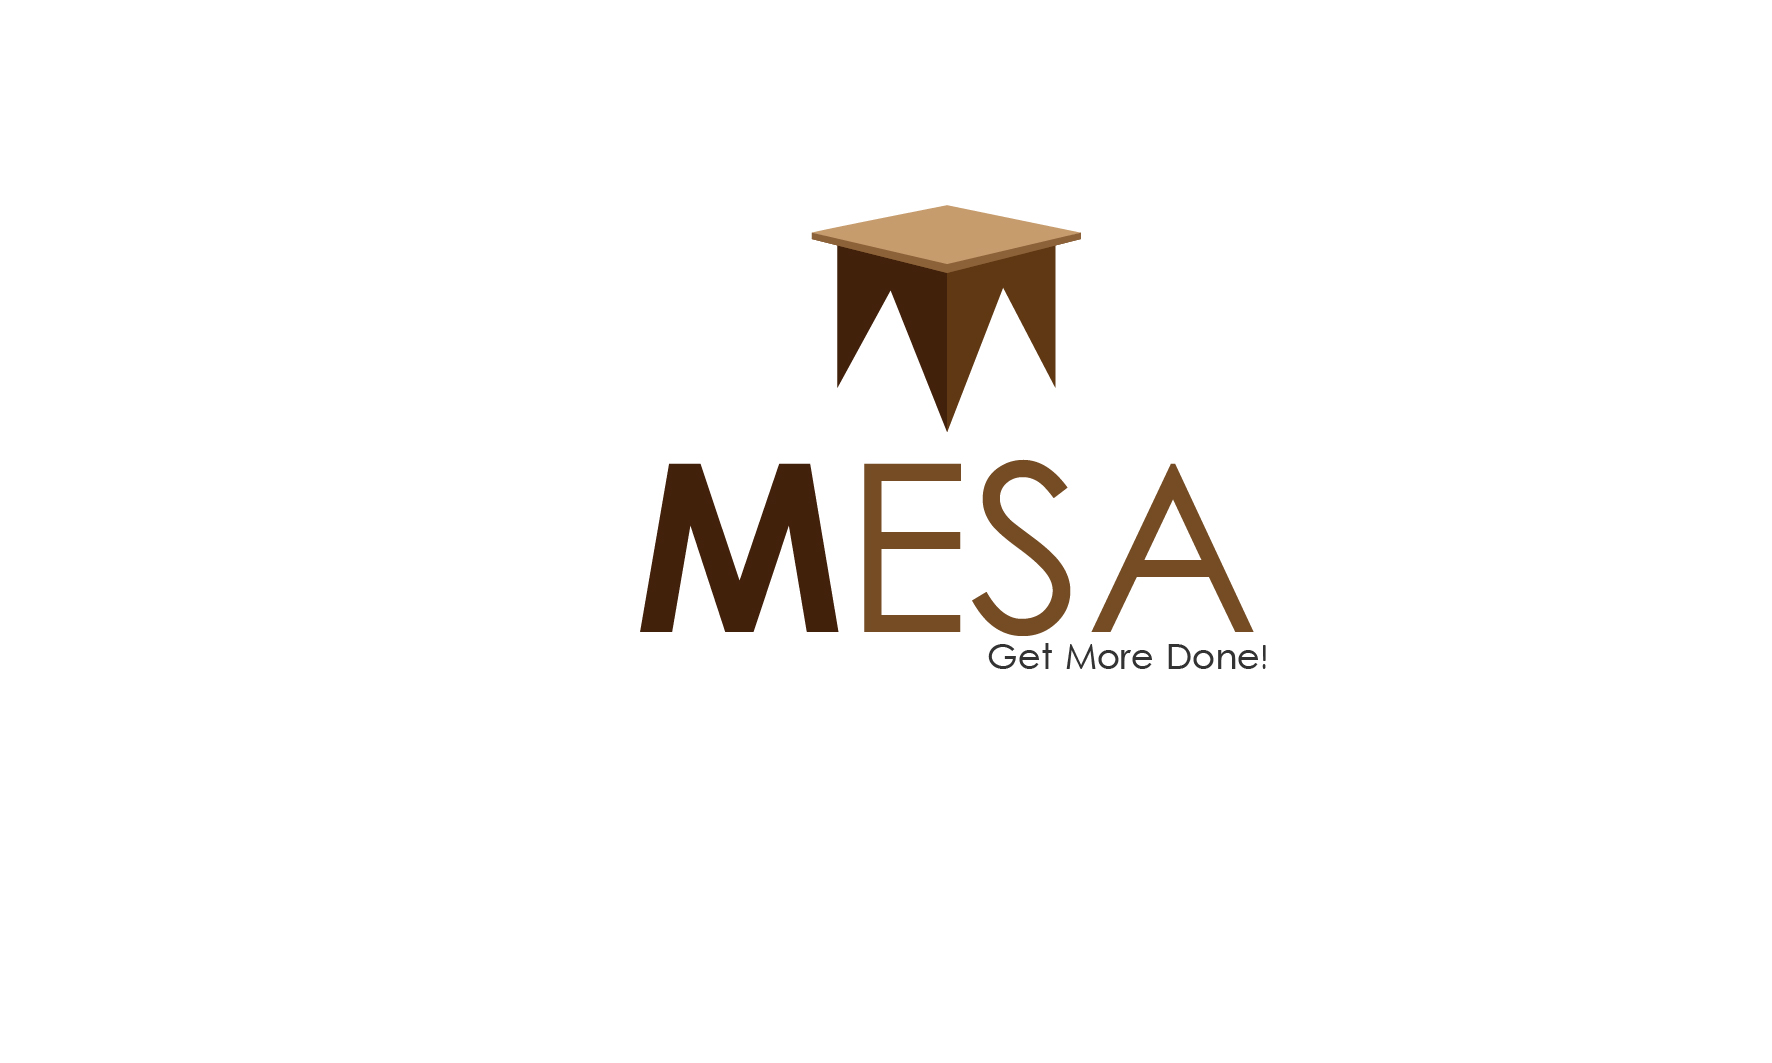 Logo Design by 3draw - Entry No. 158 in the Logo Design Contest Logo Design for Mesa.